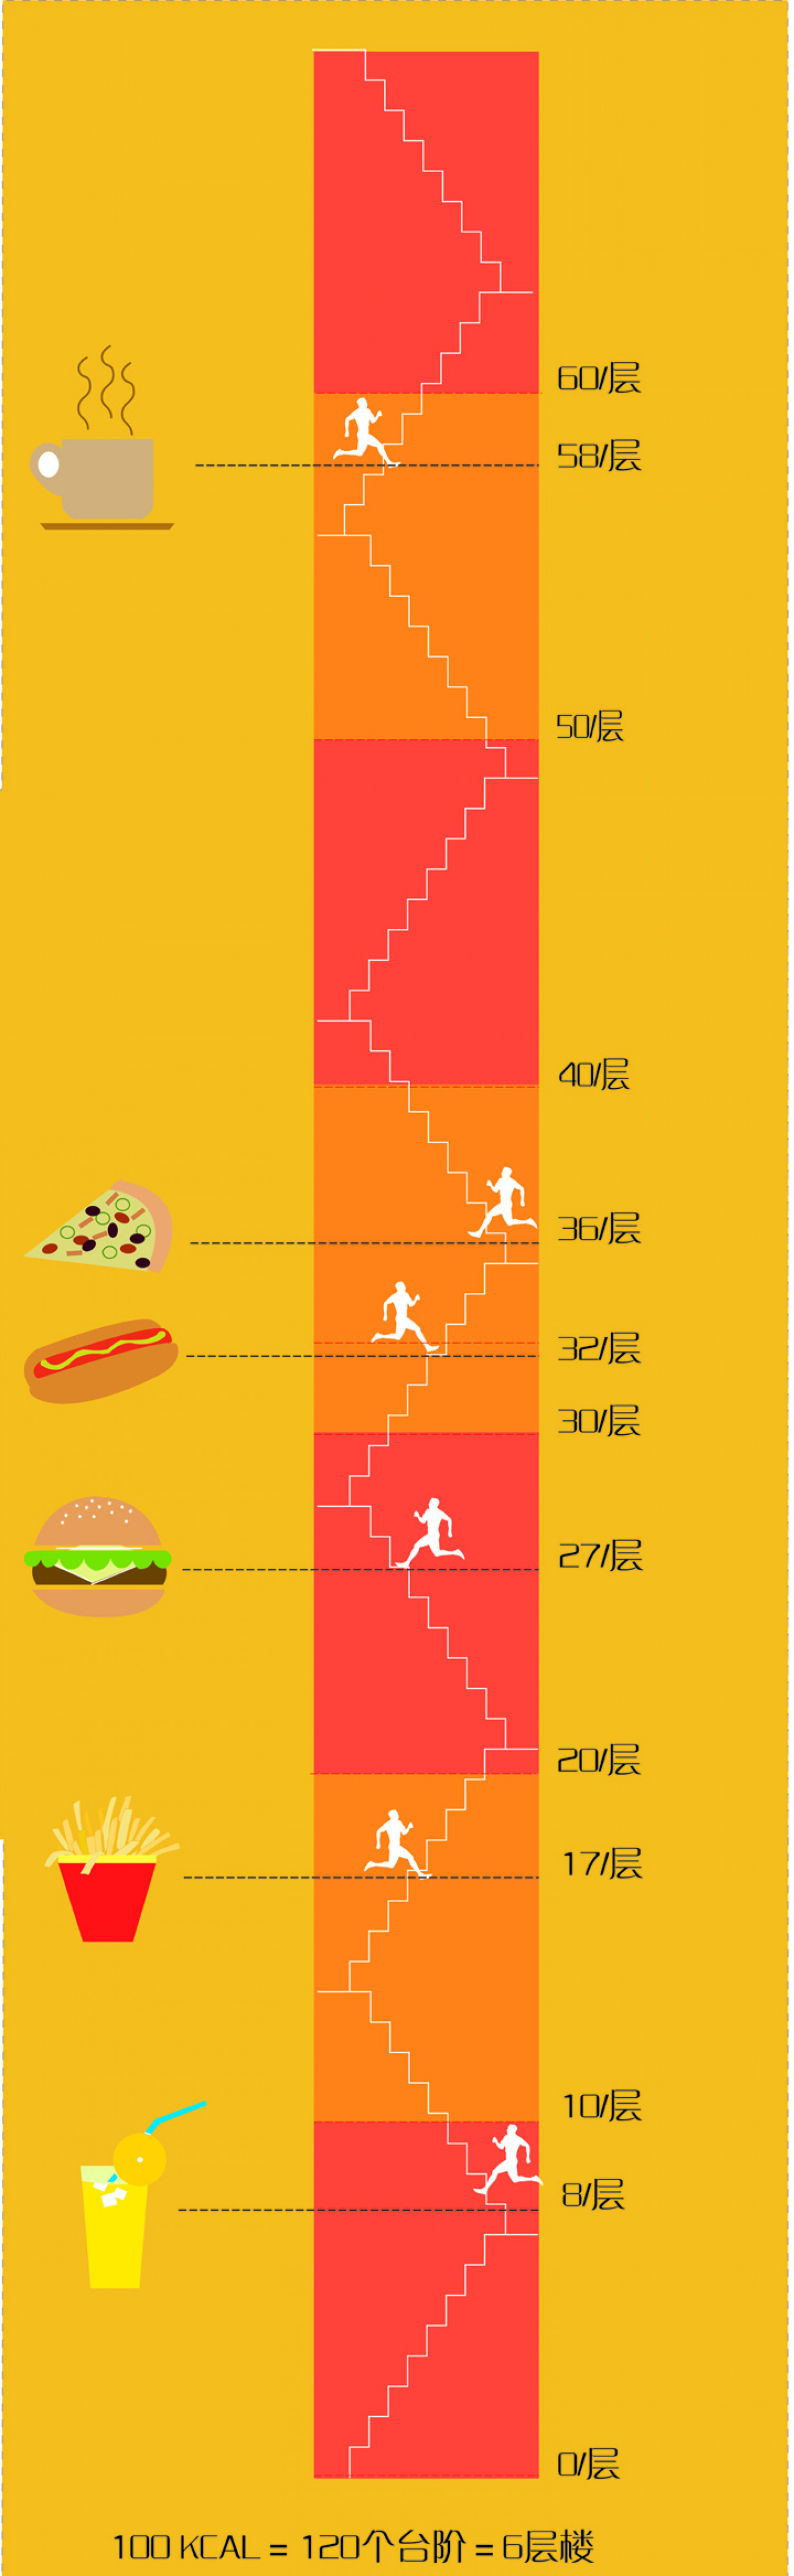 Calorie Collection Infographic